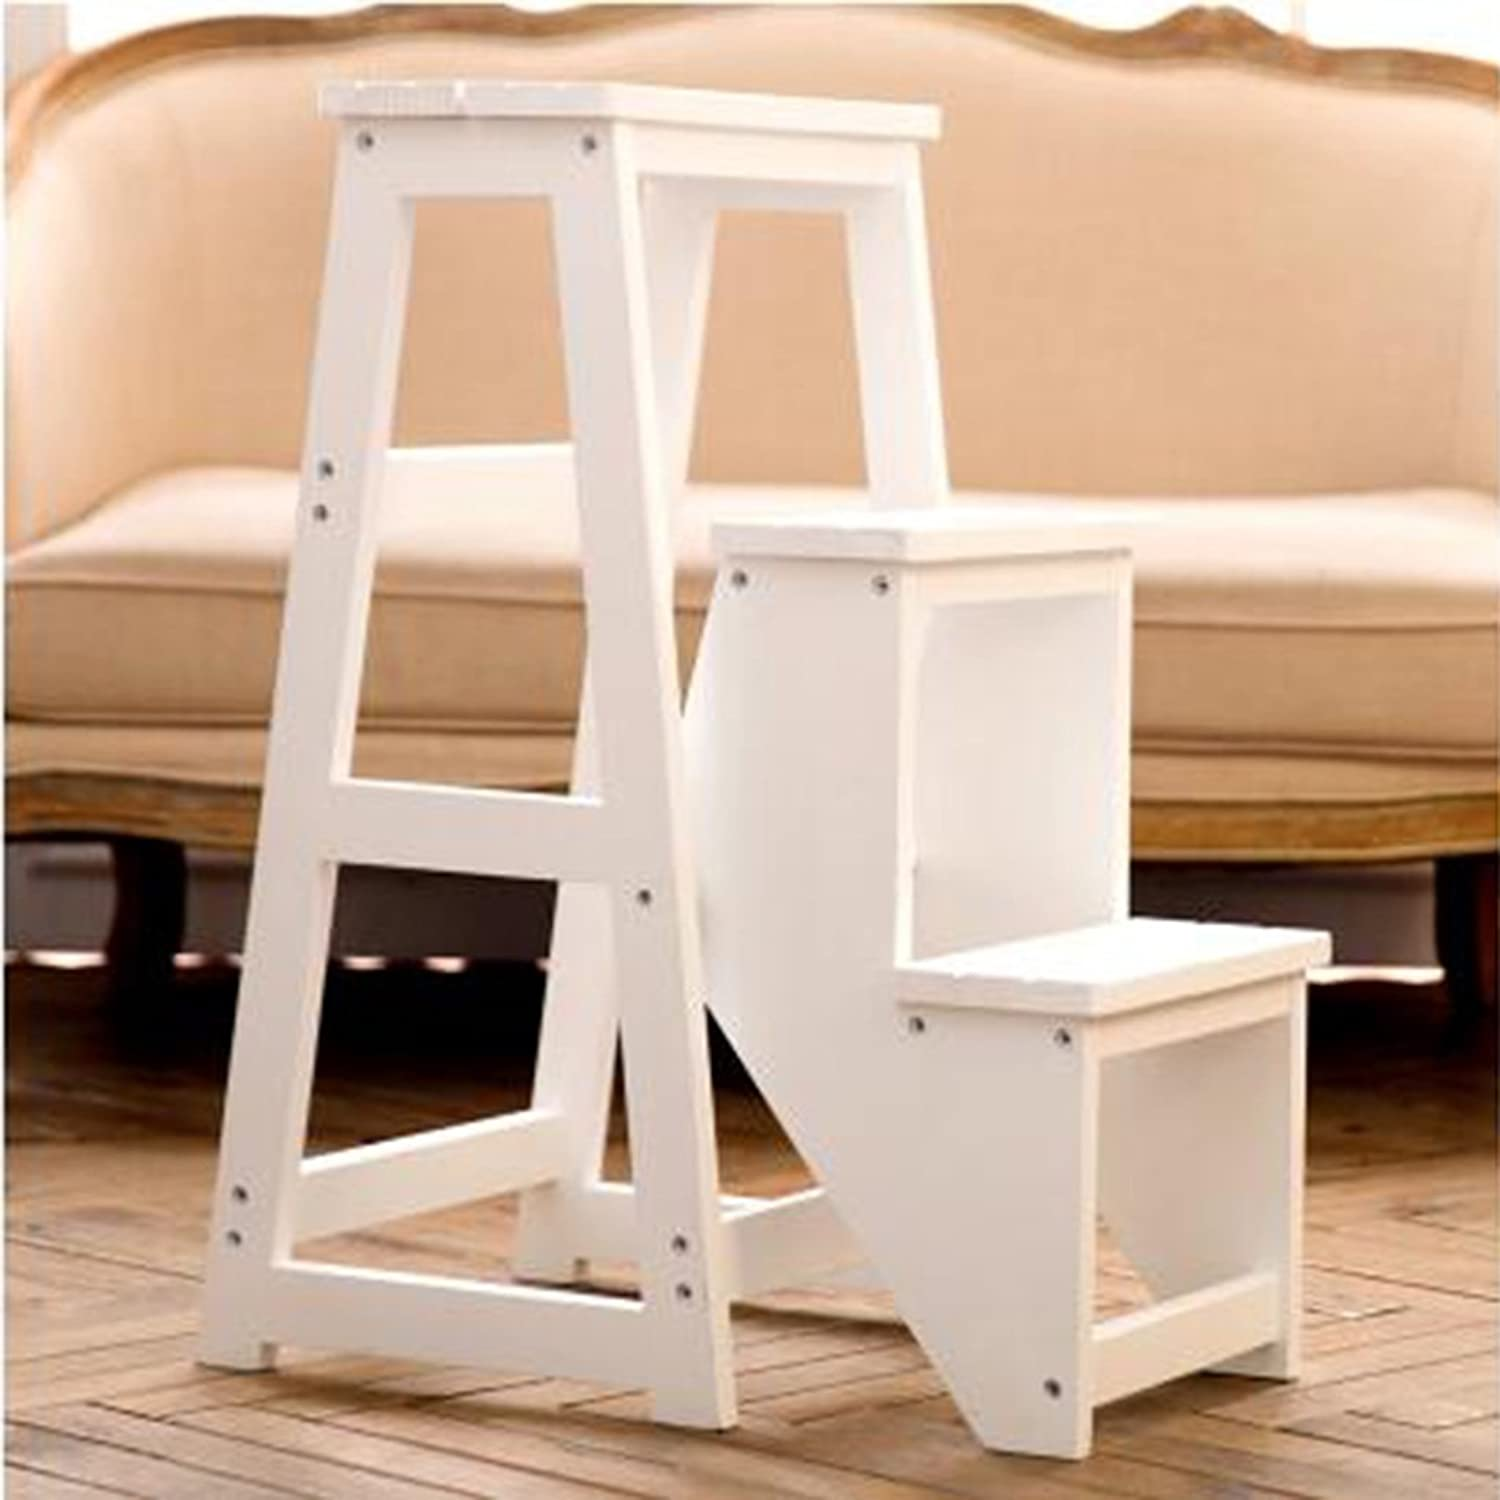 YQRYP Non-slip step stool Solid Wood Folding Ladder Three Layers Ladder Stool Step Ladder Staircase Stool Household Ladder Multi-layer Storage Ladder Dual-use Step Stools Slip resistant,durable,Househ